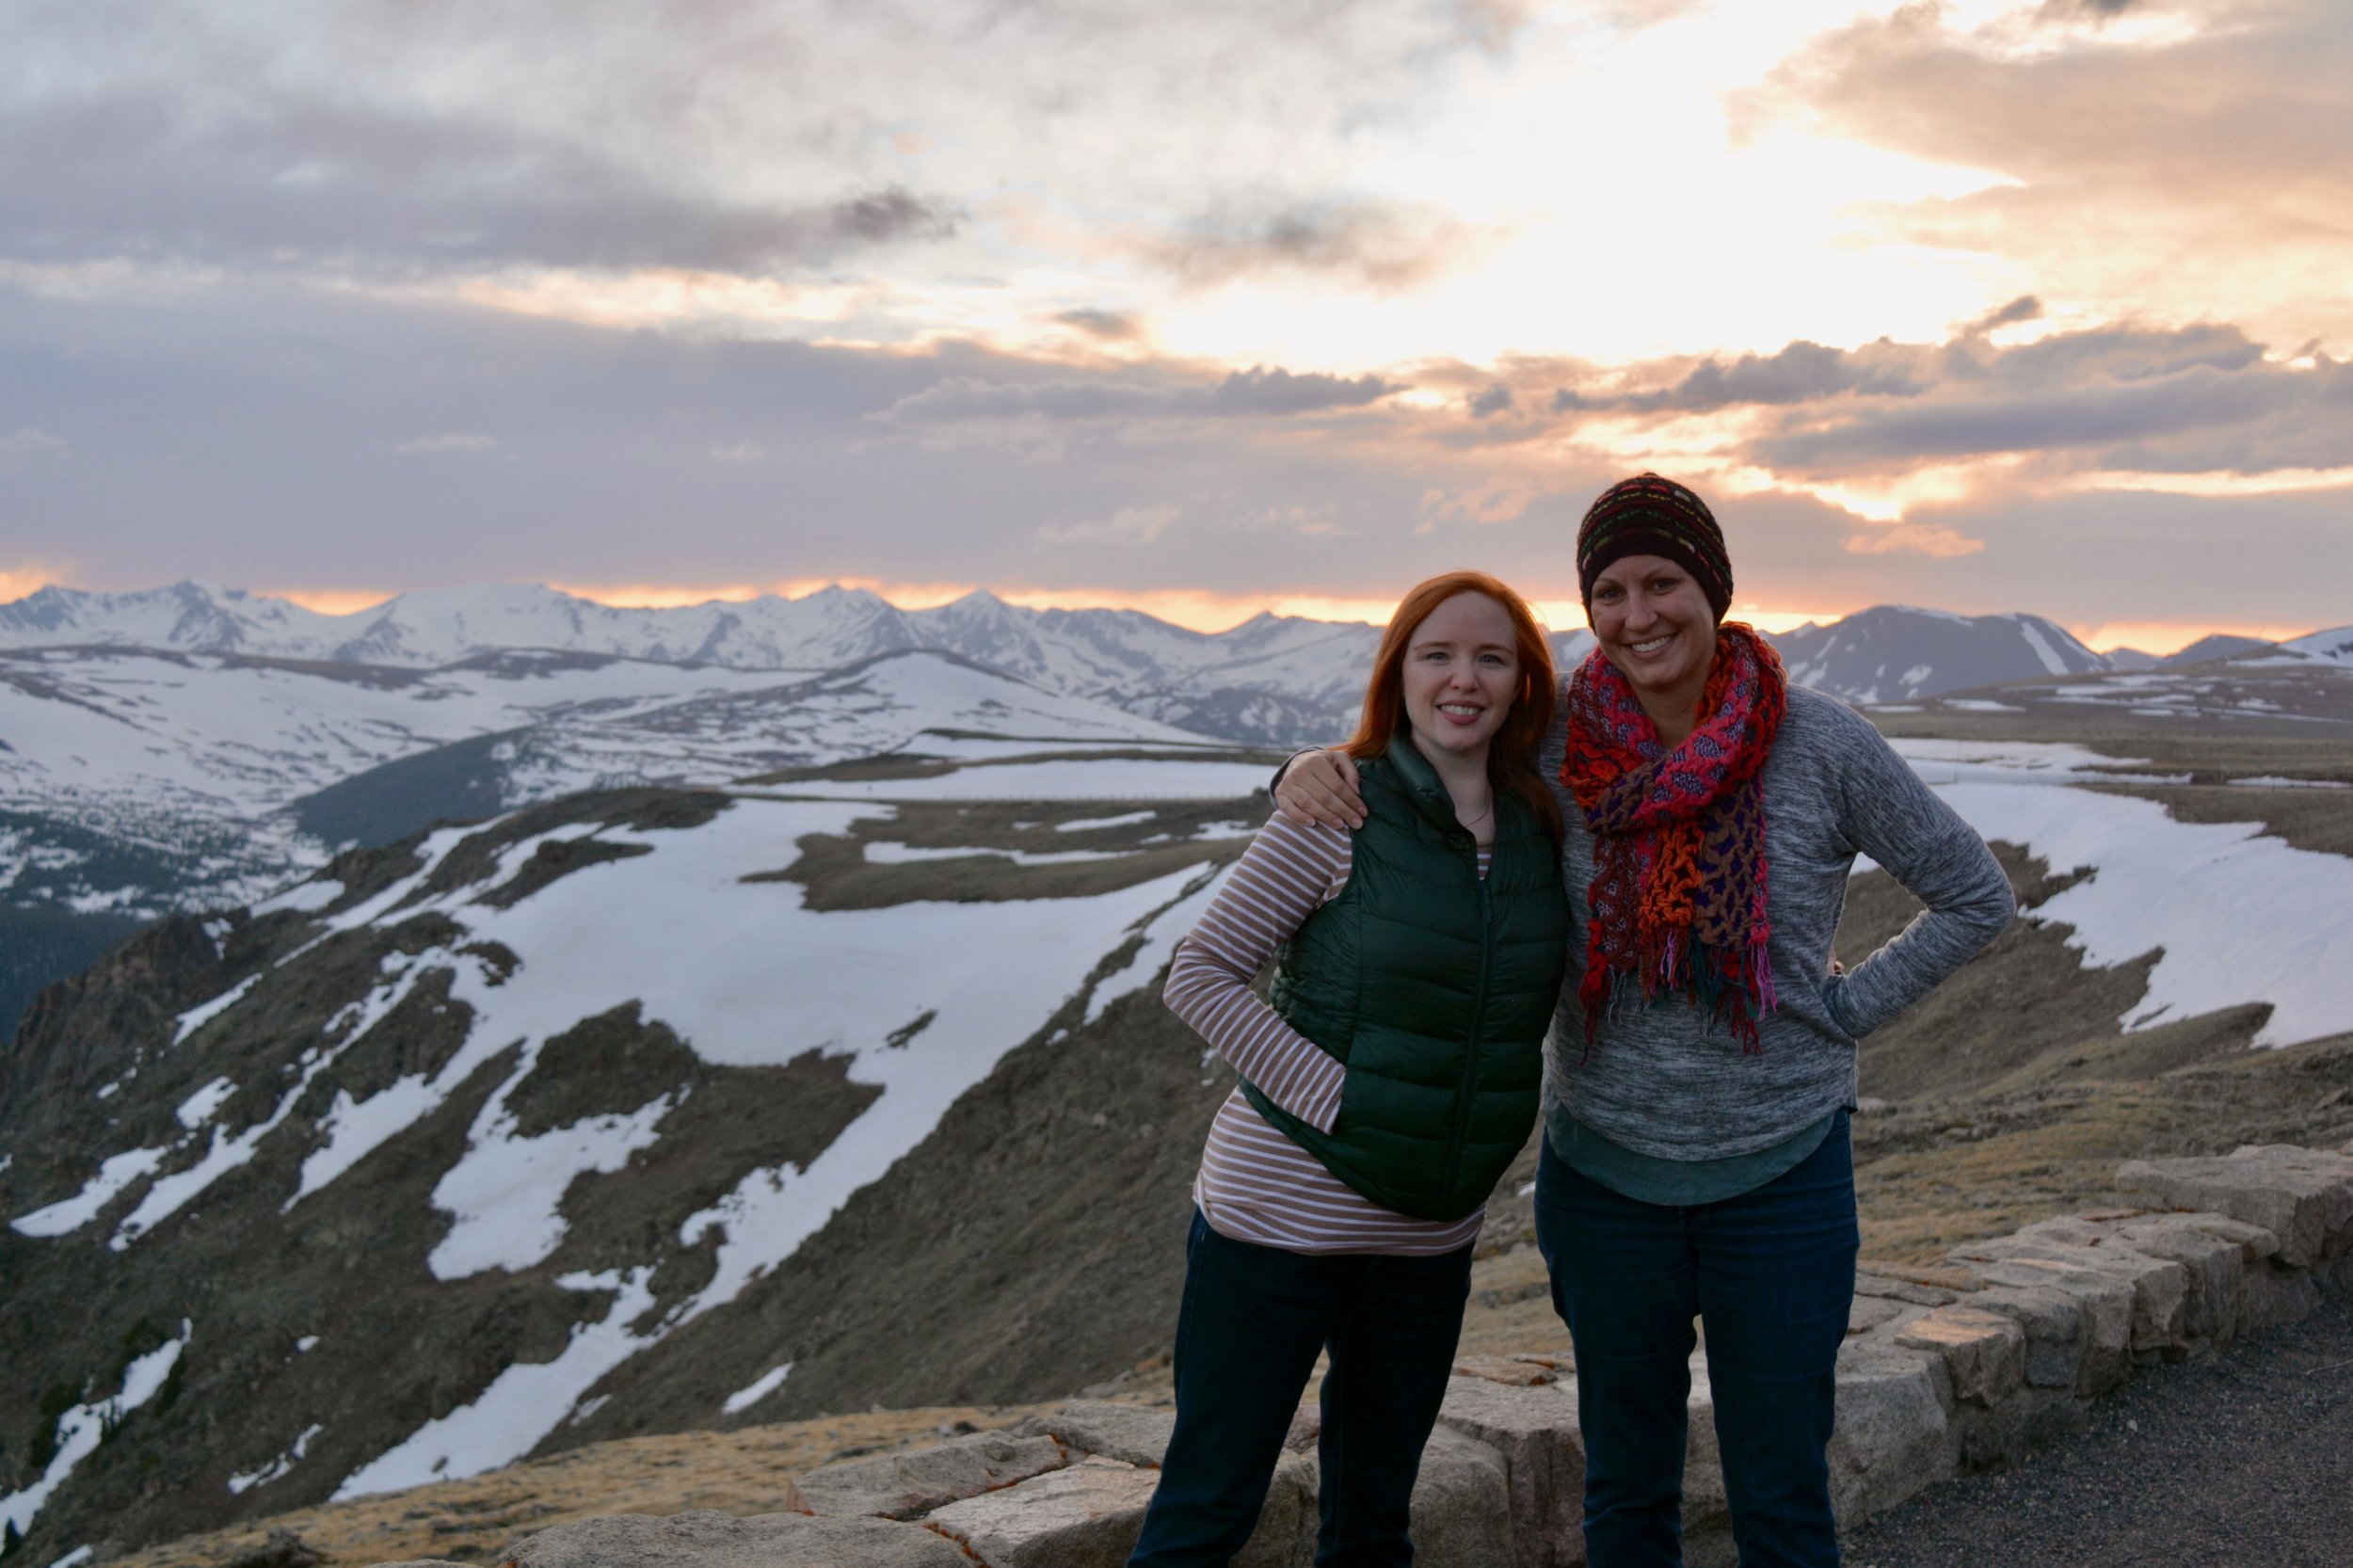 Jenny and me on the alpine tundra